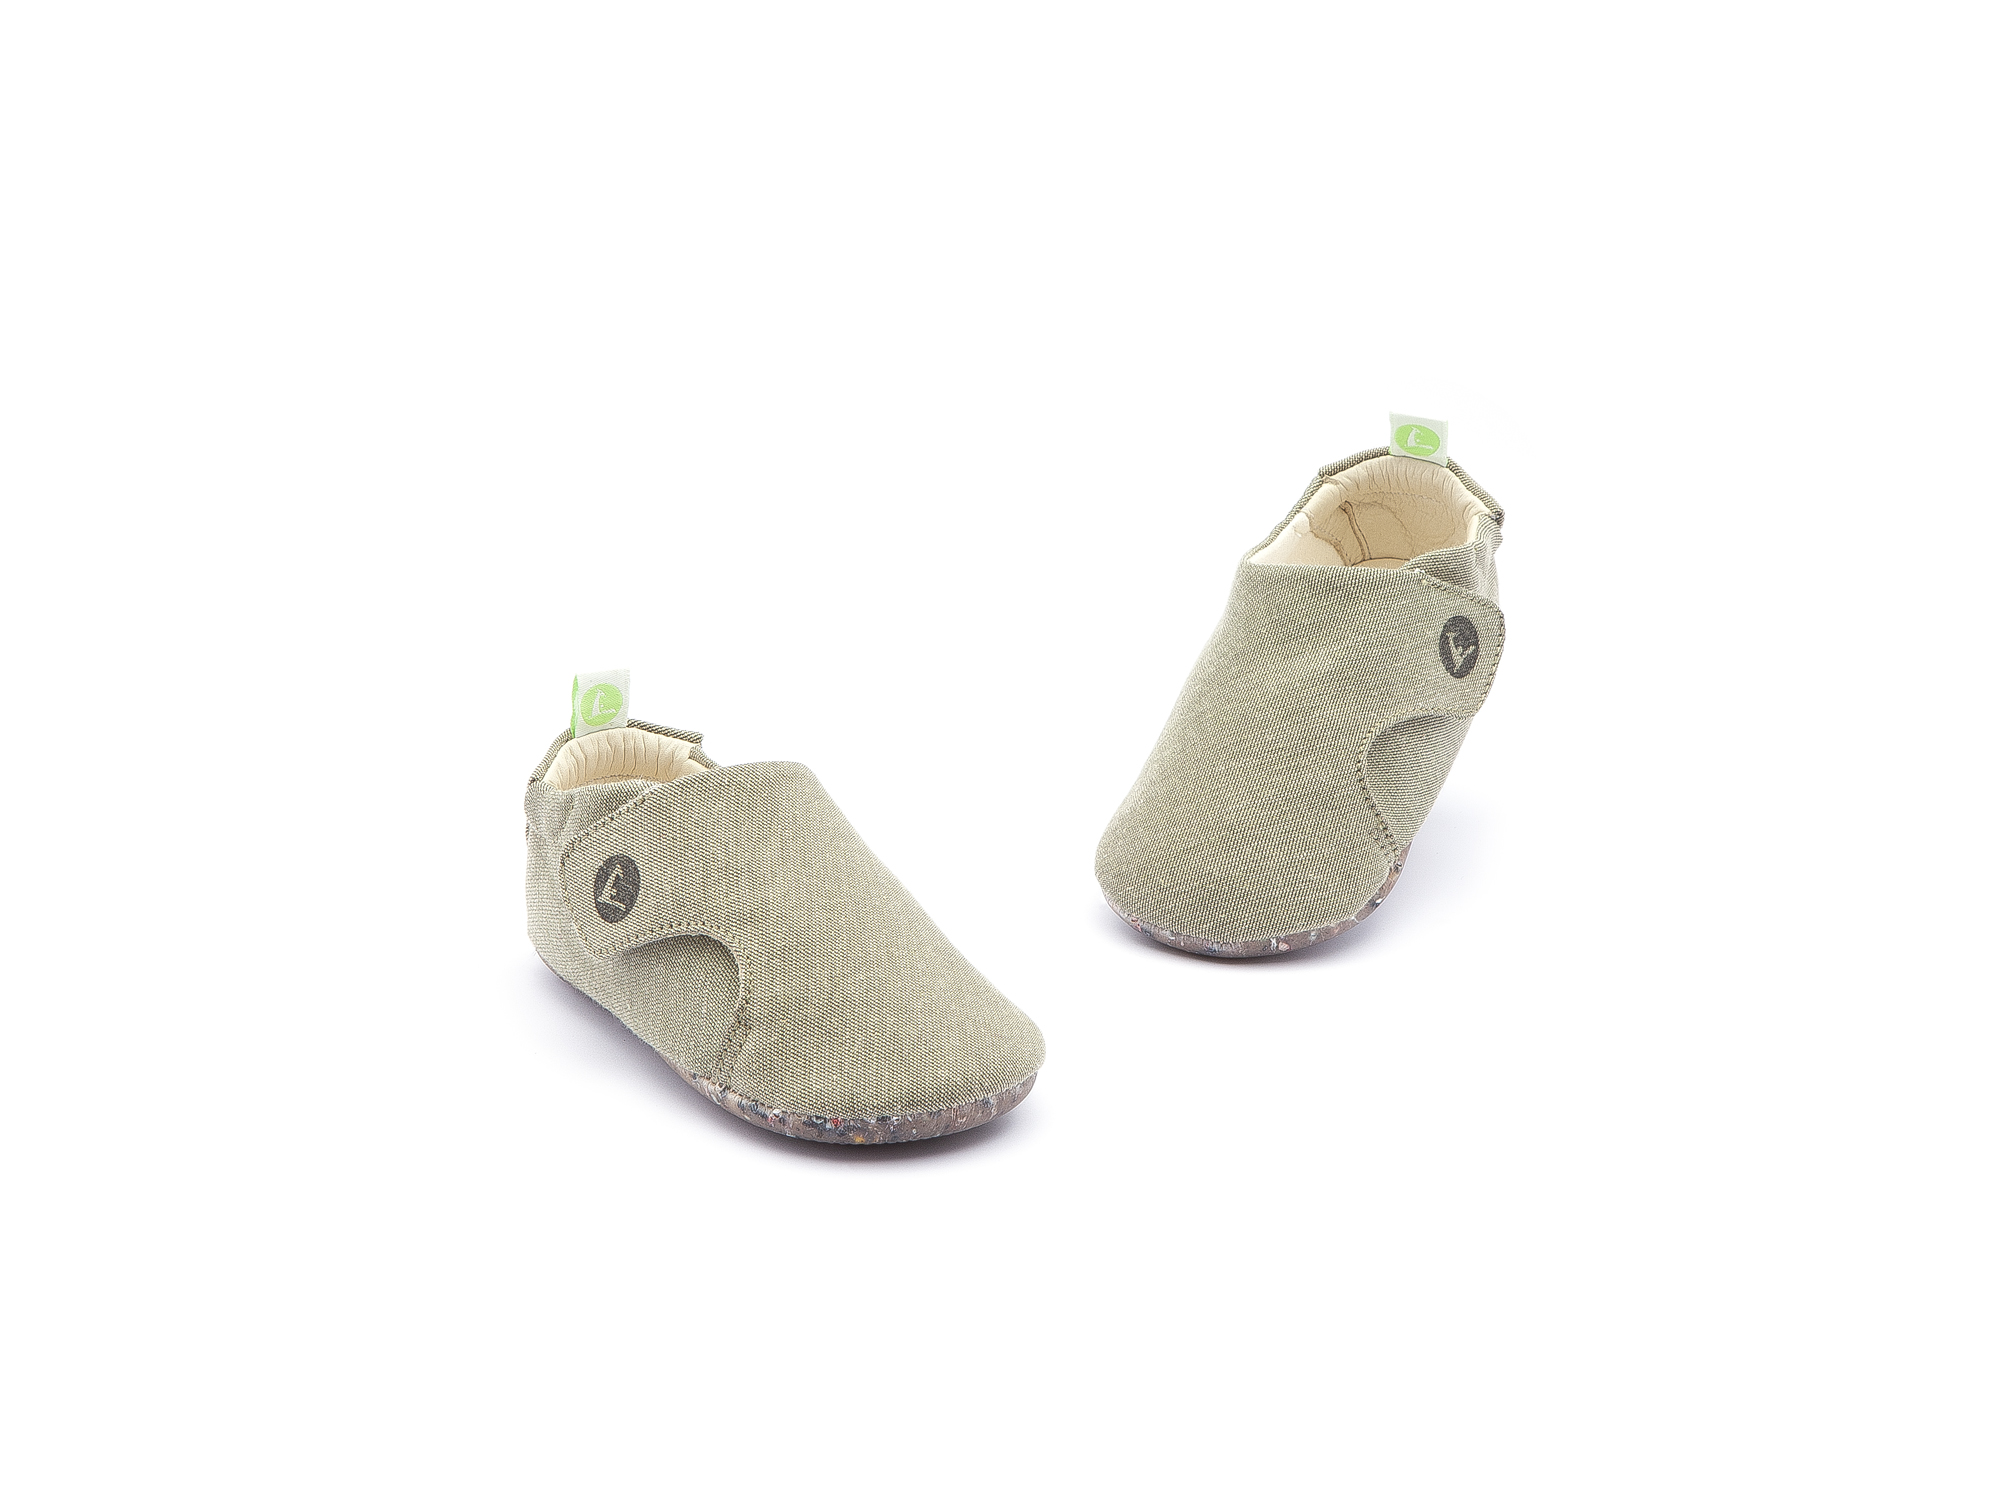 Sneaker Casual Greeny Light Olive Canvas Baby 0 à 2 anos - 3